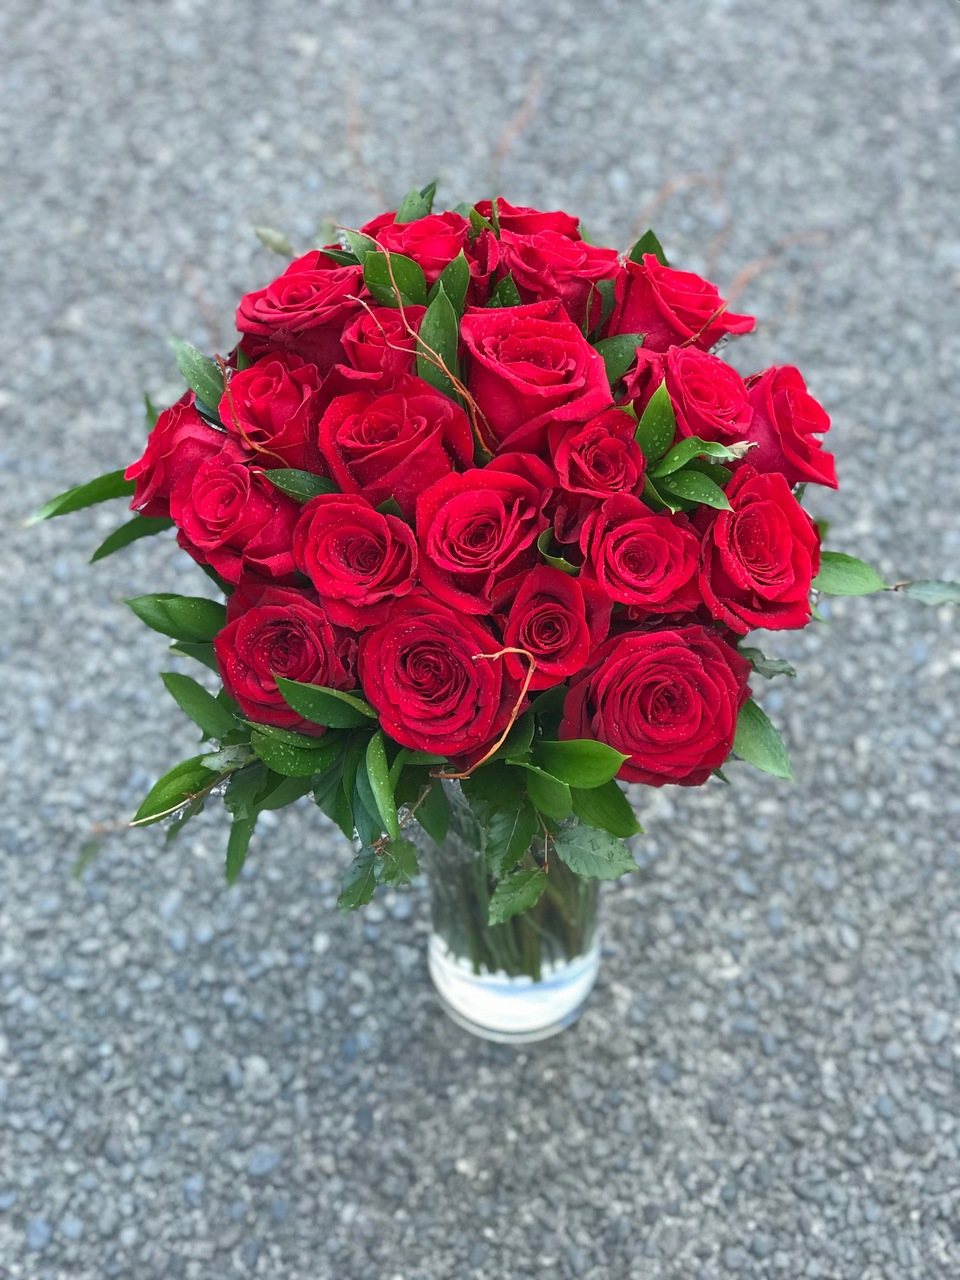 Two dozen red roses presented with seasonal foliage in a complimentary vase.